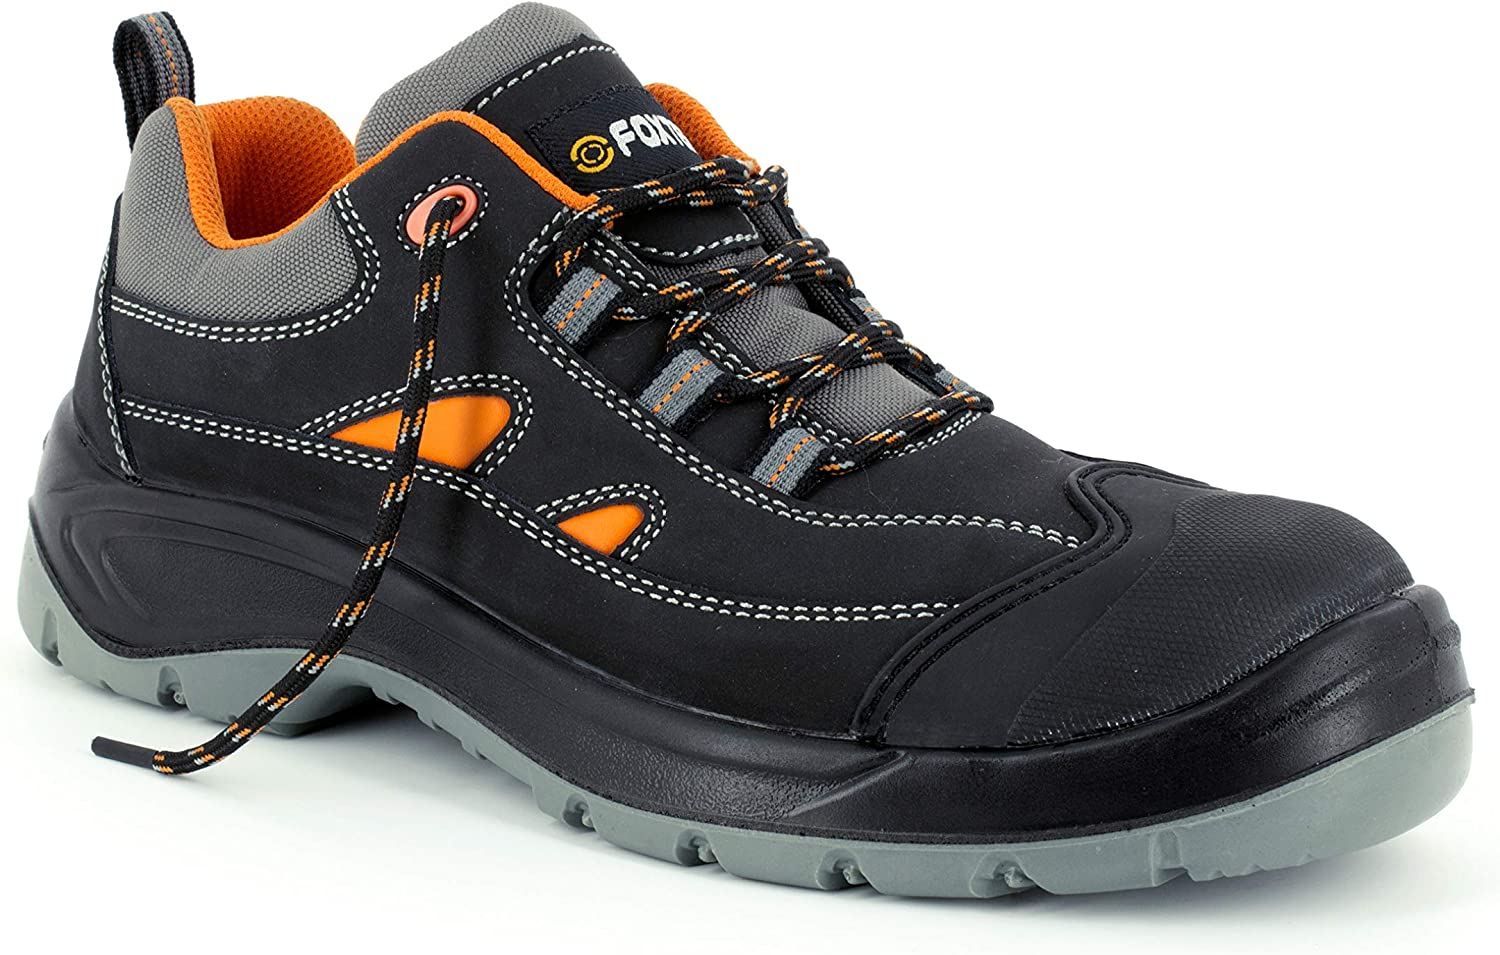 Foxter - Safety shoes   for Men   High Comfort   Work Trainers   Light   Waterproof   Metal Free   Leather Black   S3 SRC